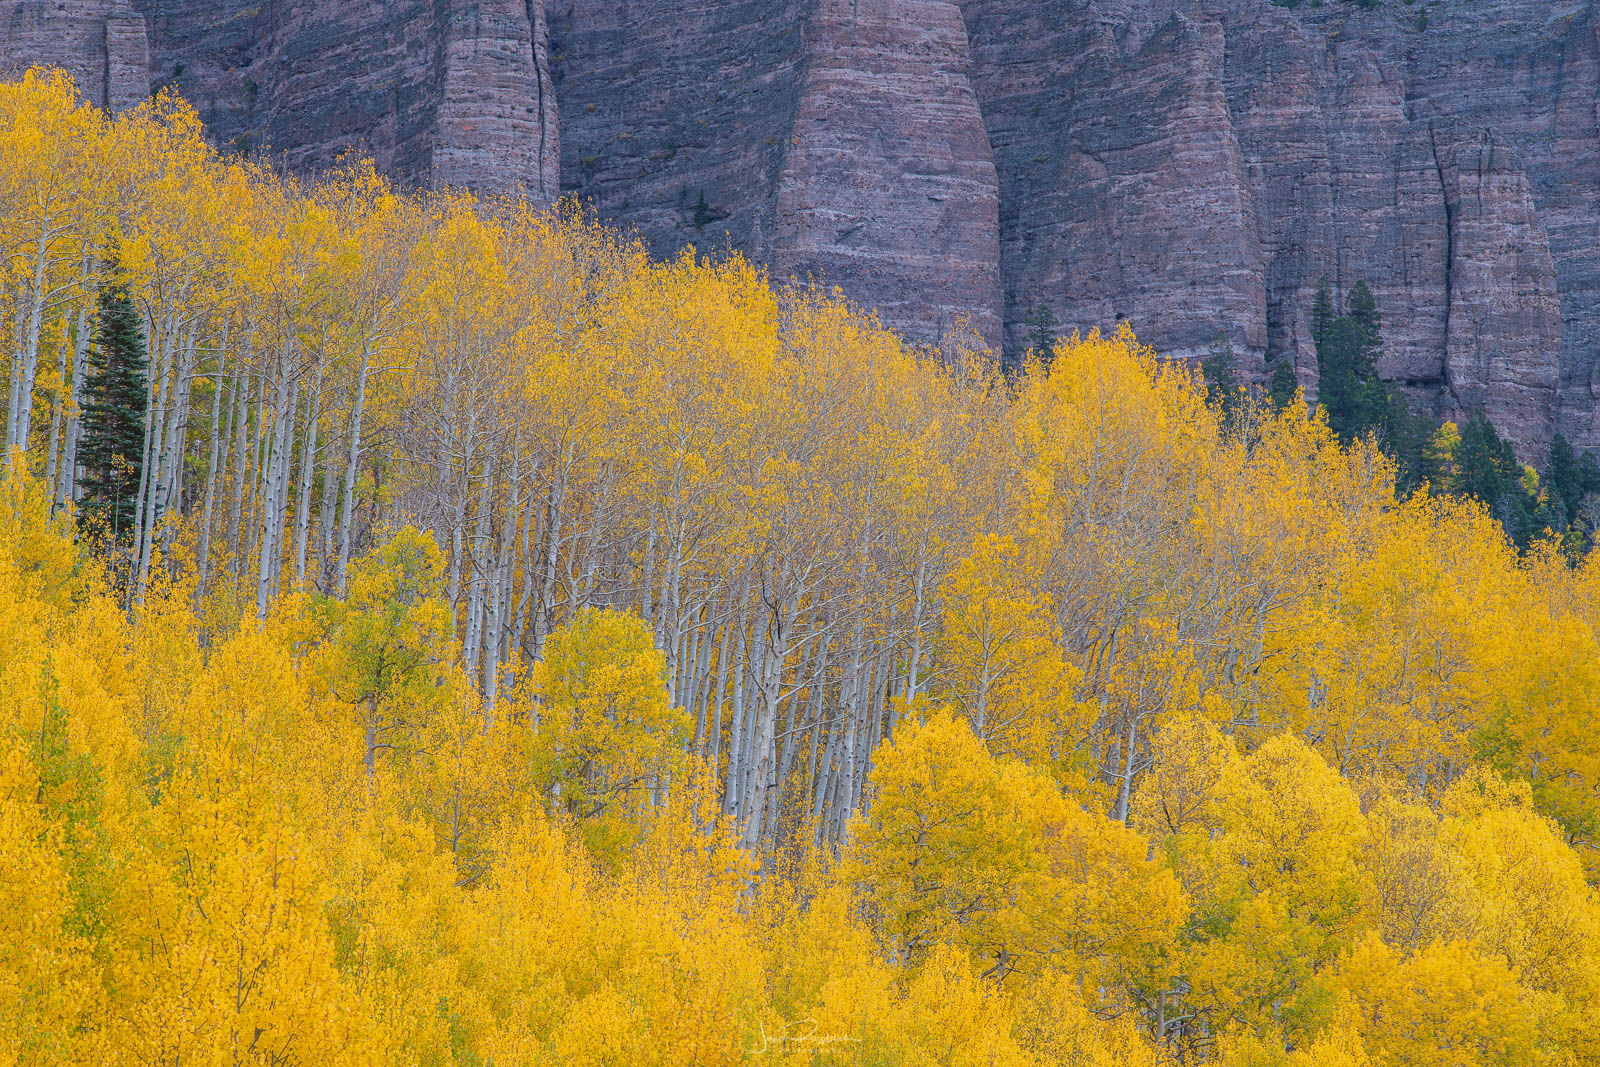 Aspens below Turret Ridge from Silver Jack Reservoir.